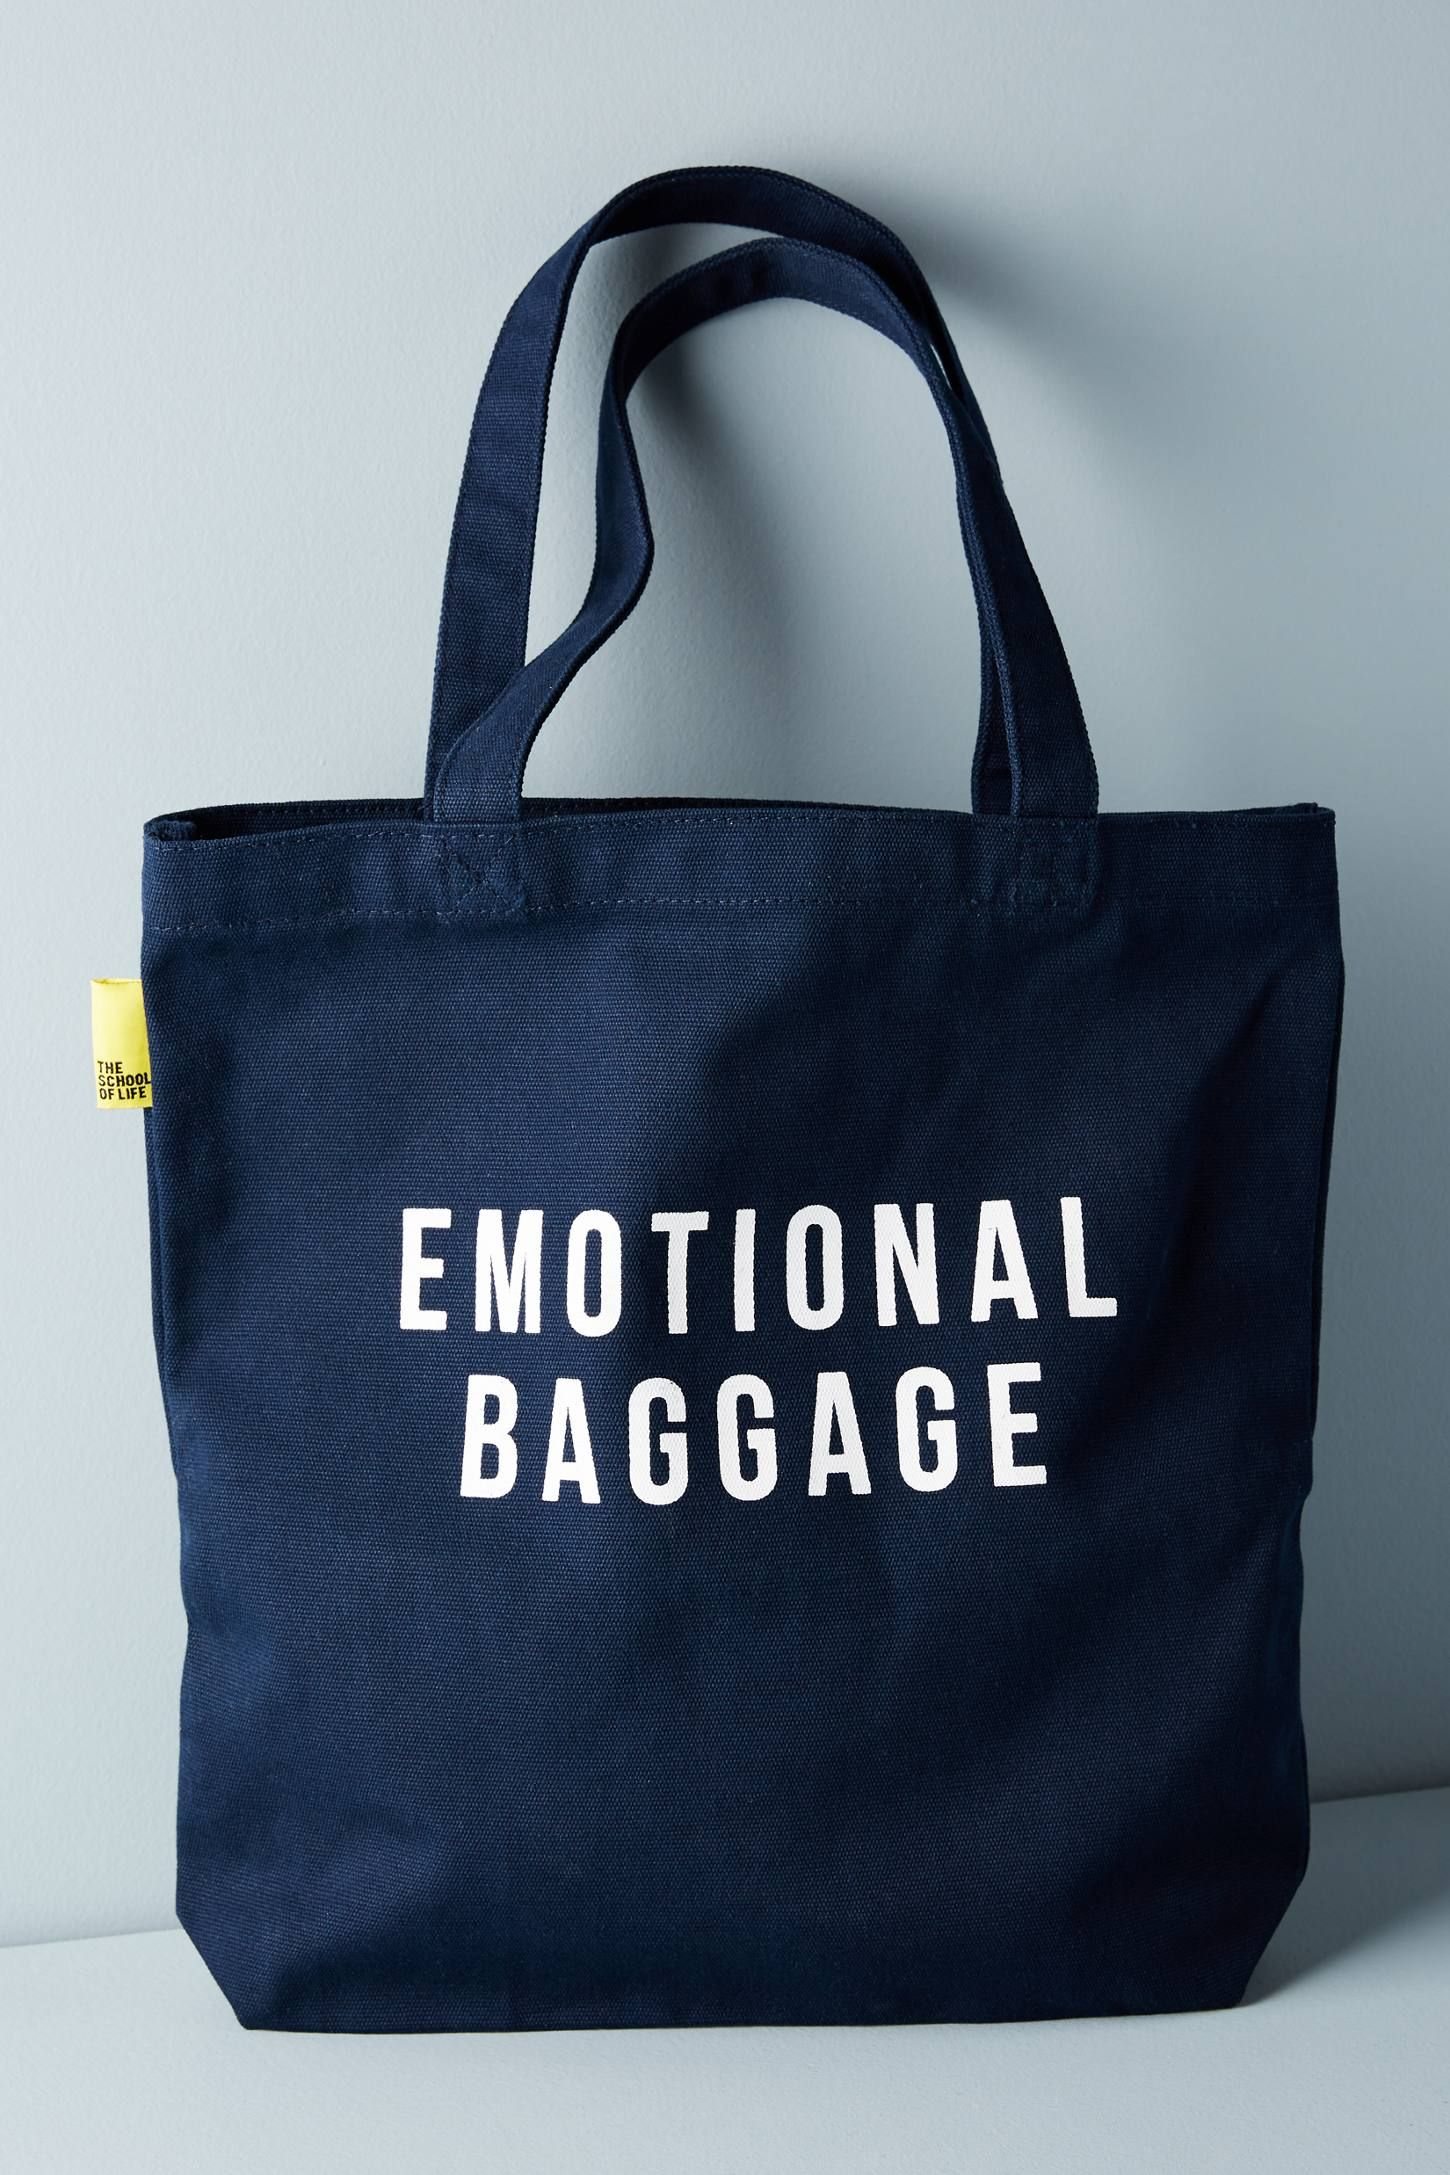 The School of Life Emotional Baggage Tote Bags, Canvas